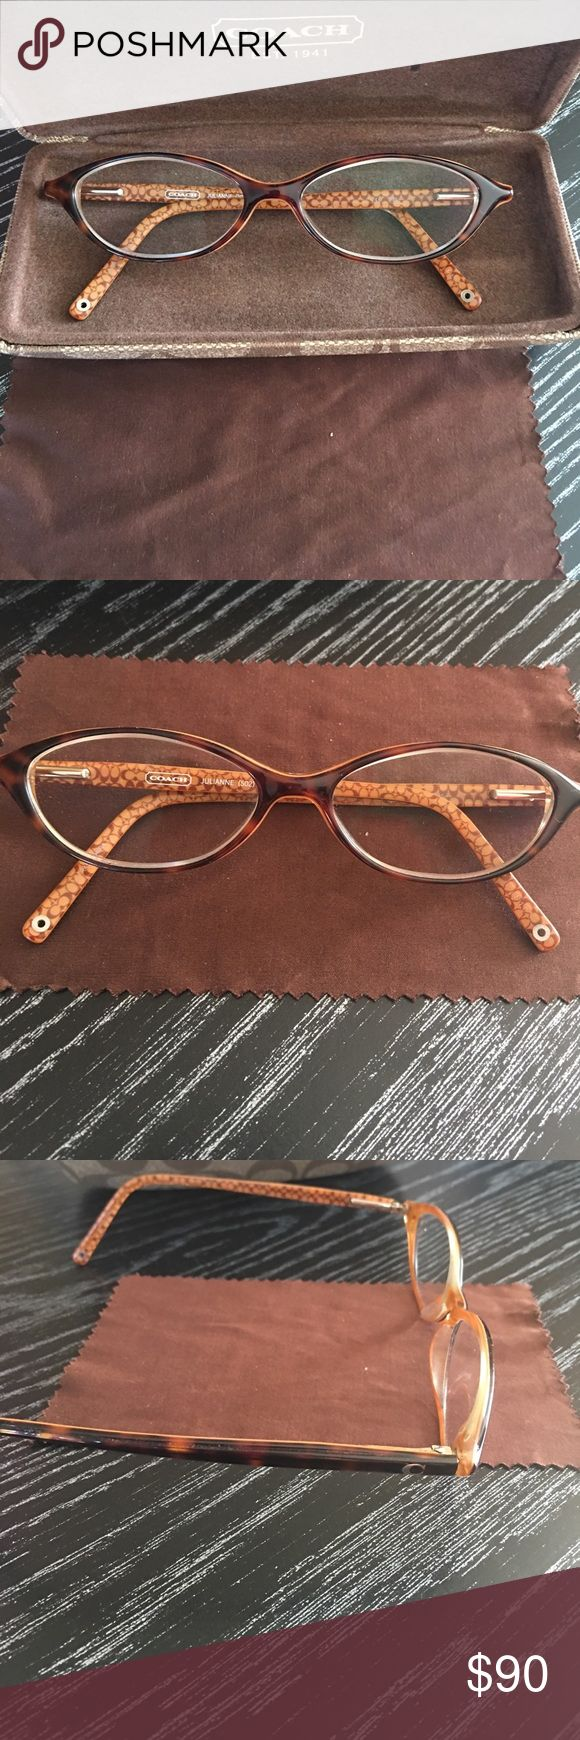 Coach glasses frame Brown signature C coach frames Coach Accessories Glasses